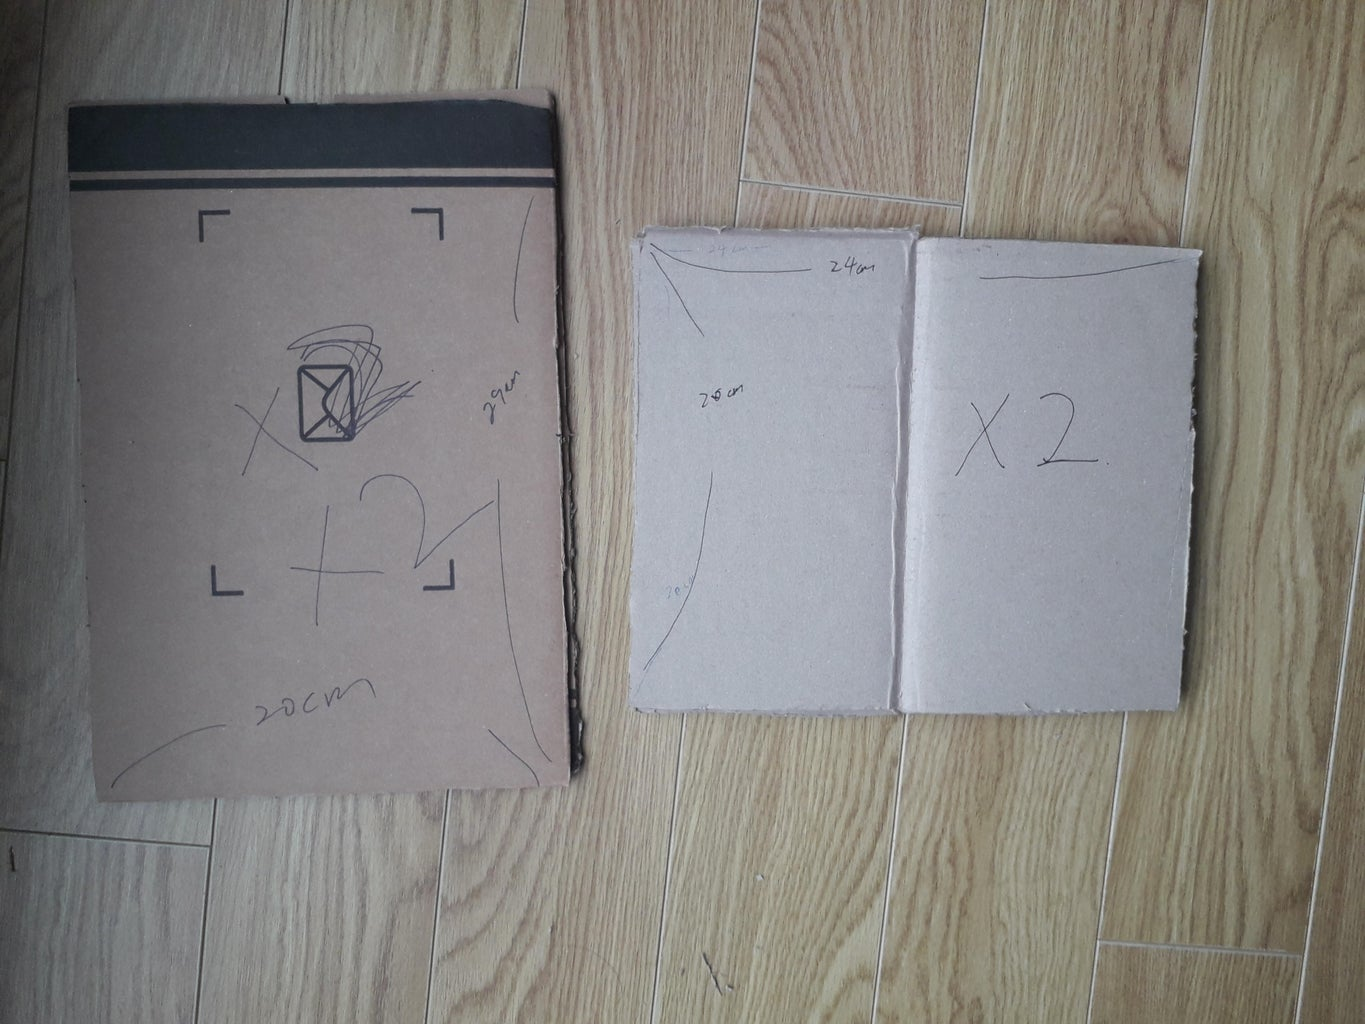 Cut the Cardboard 2 Pieces for Each 20 X 29 and 20 X 24.